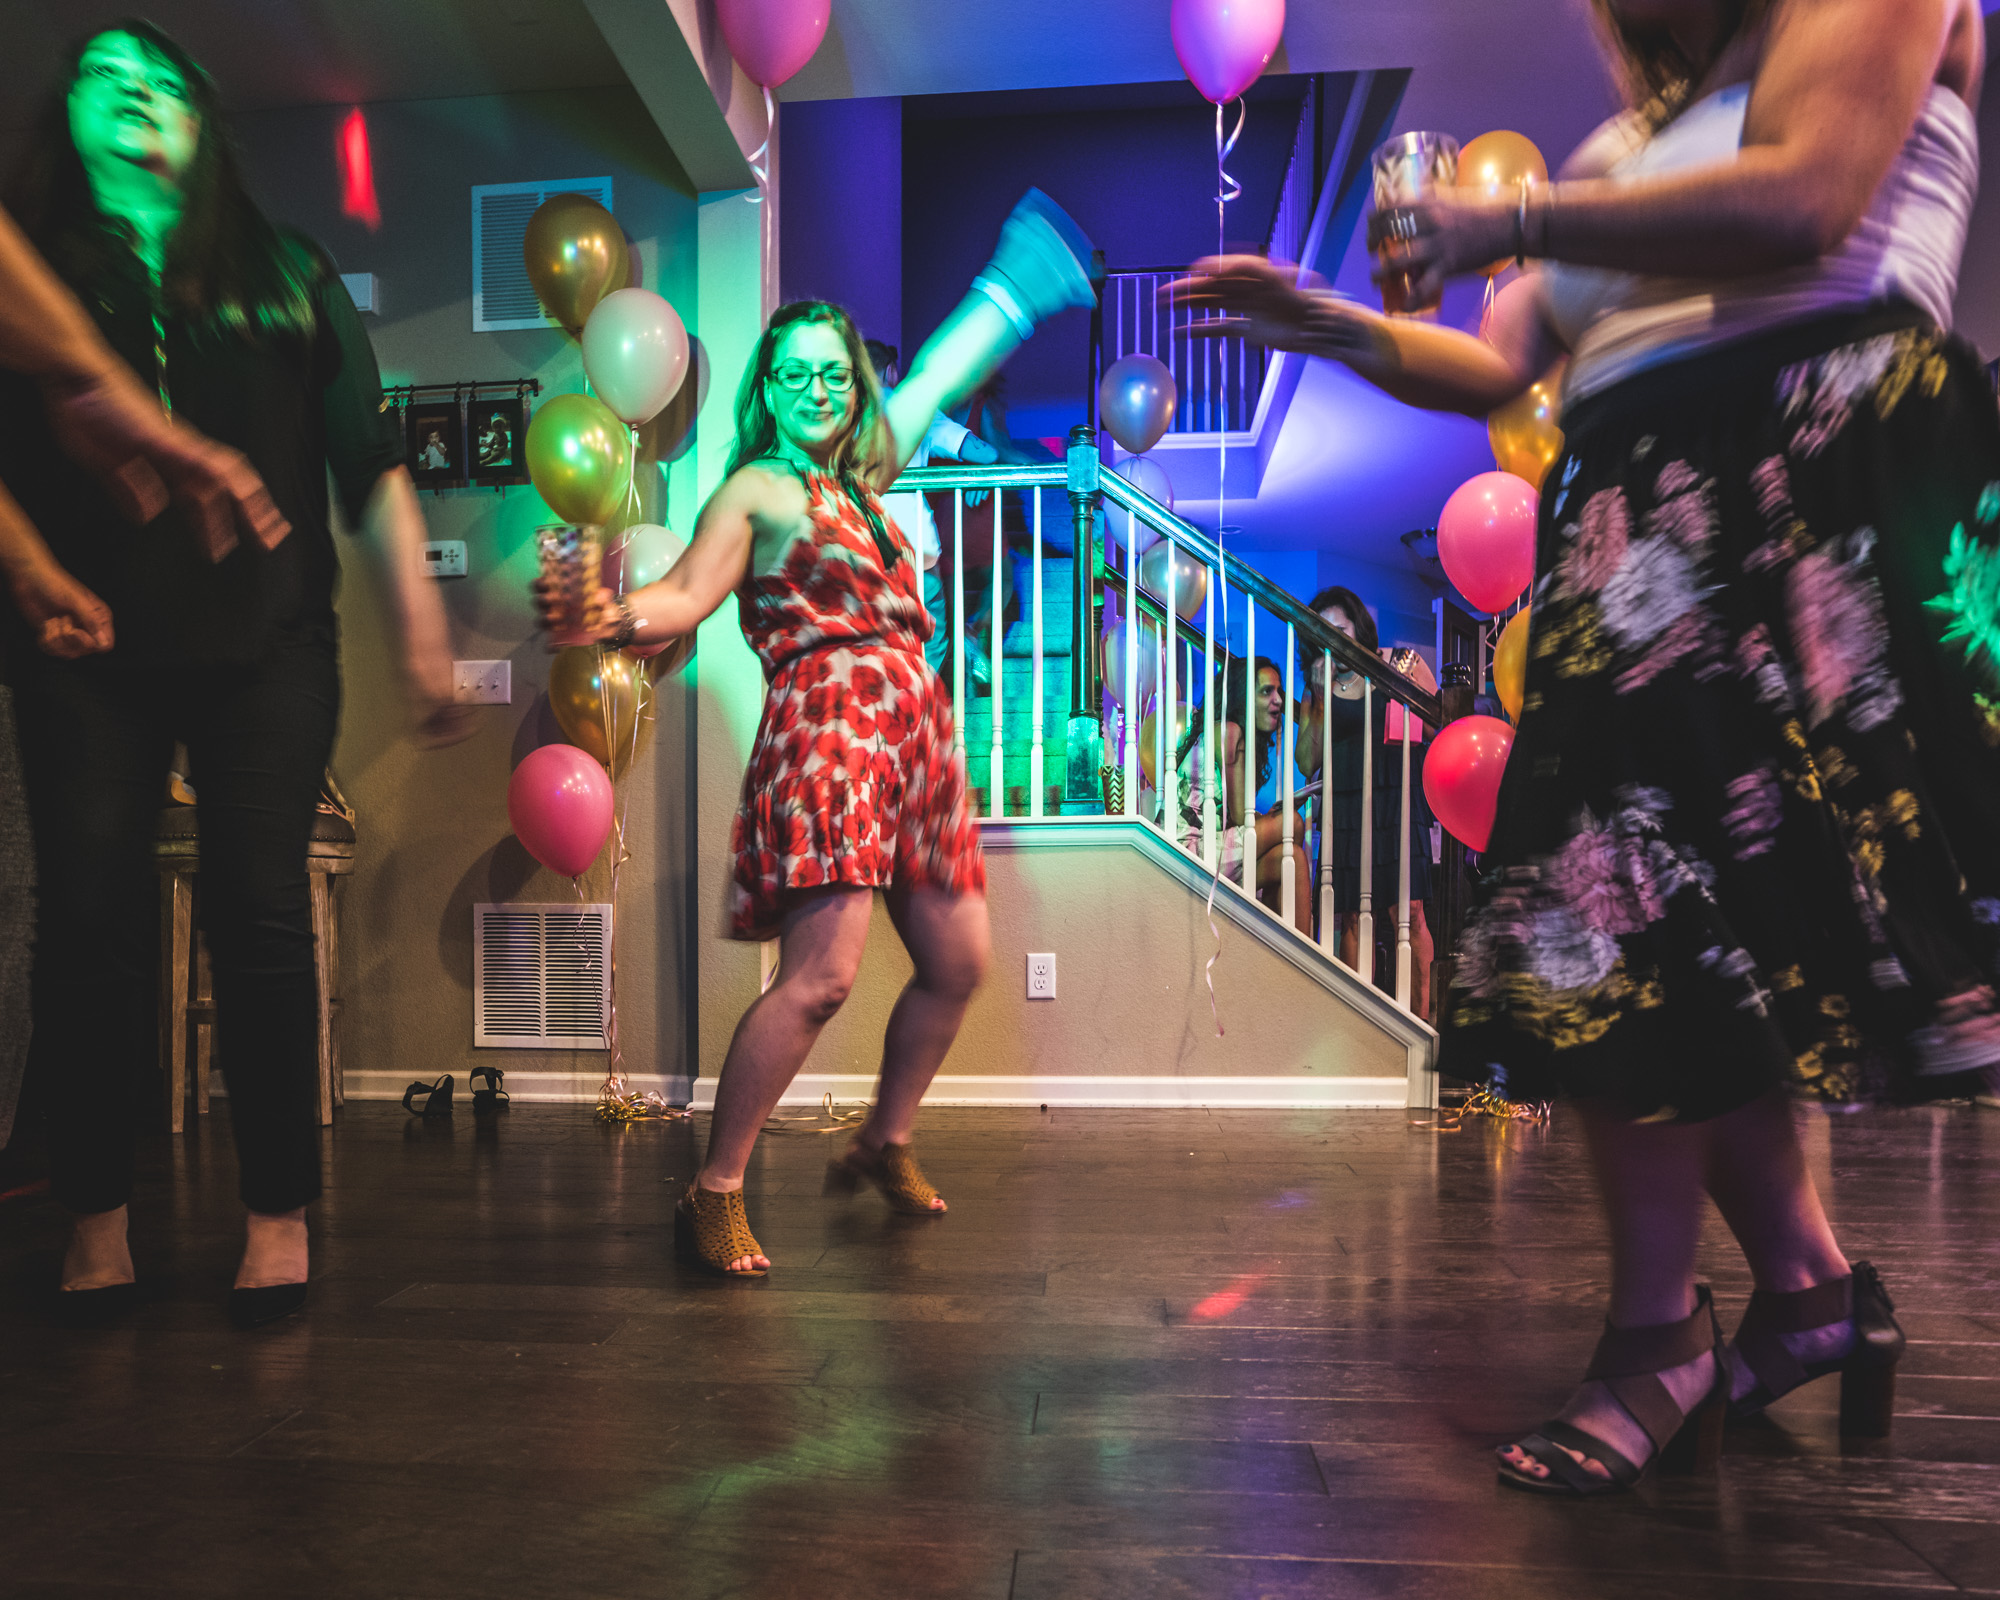 Event photograph of a woman at a house party with bright, colorful lights waving her arms around and dancing